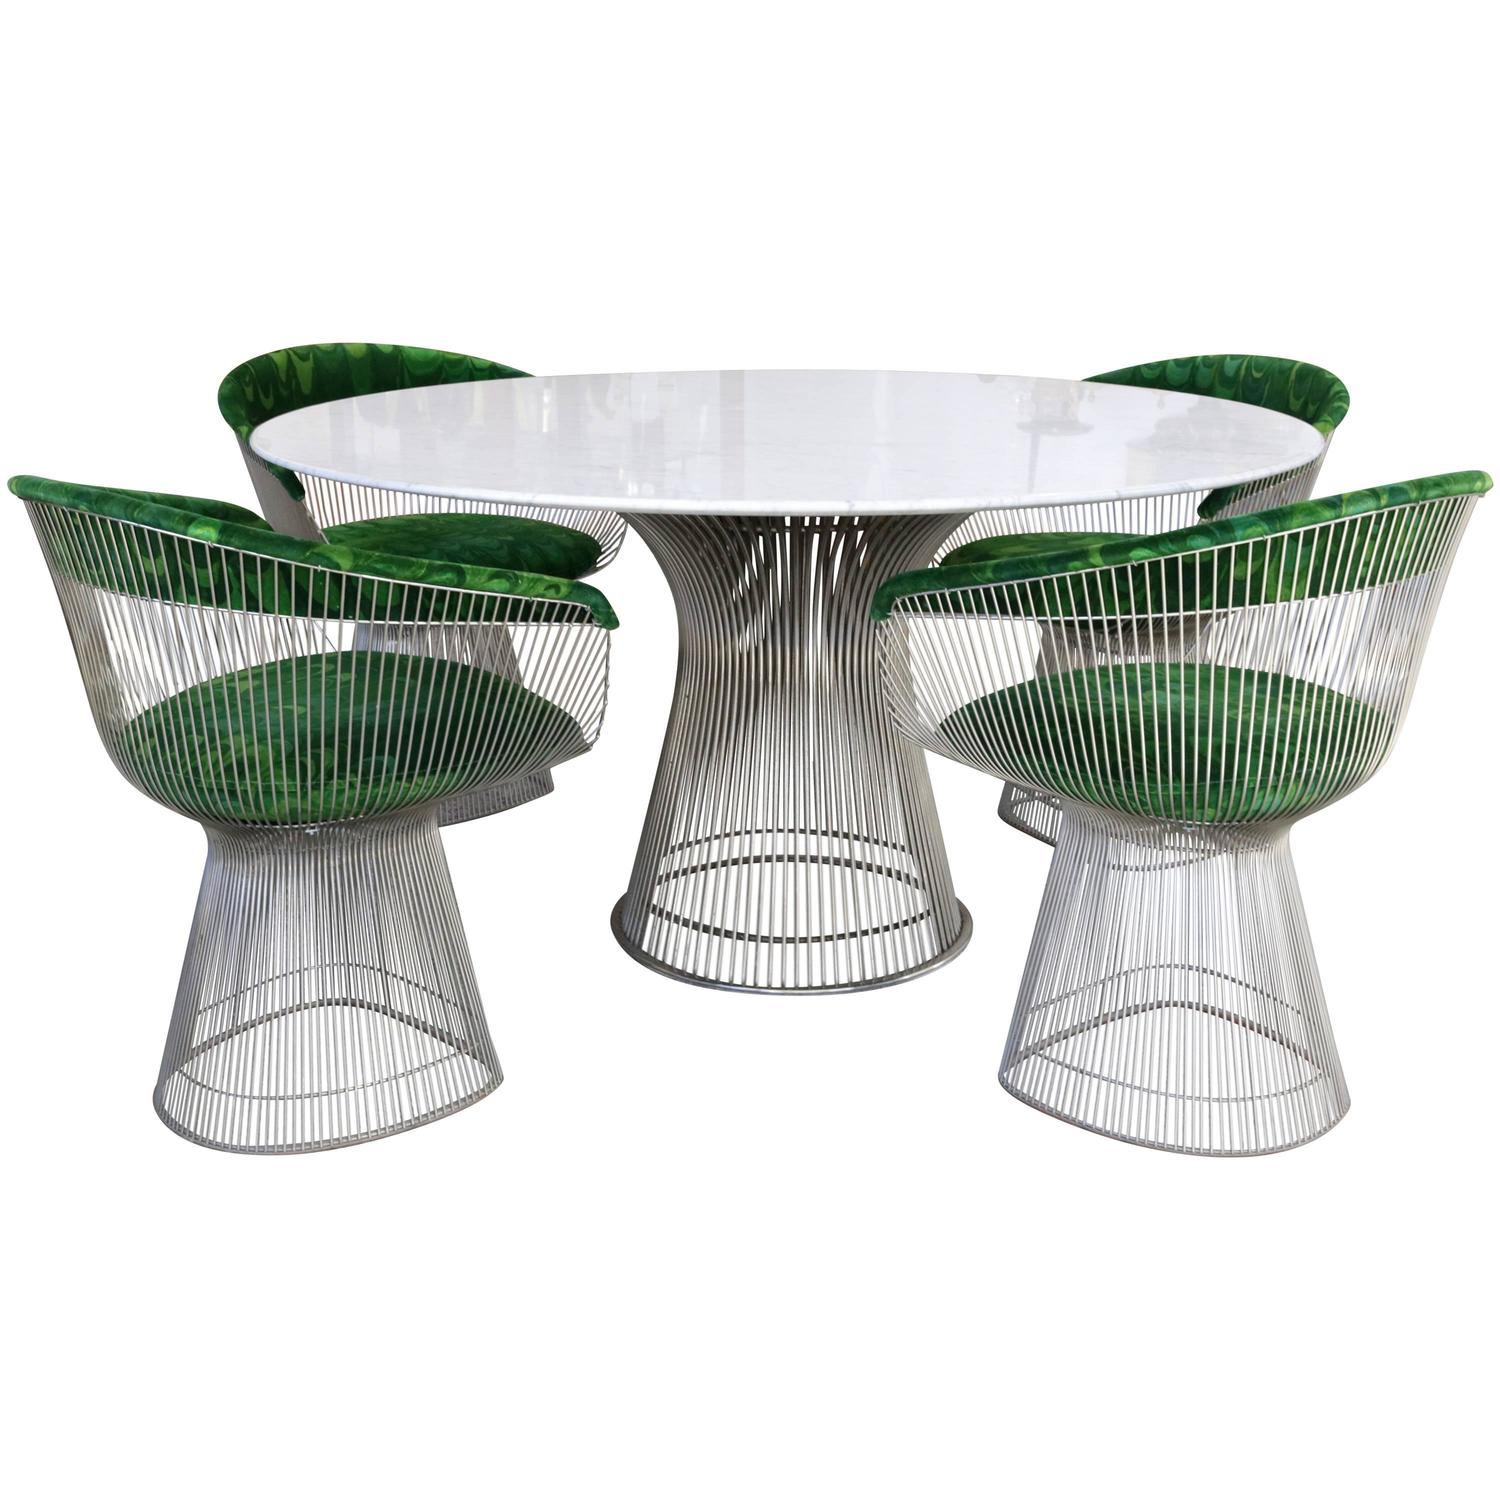 Awesome Warren Platner, Knoll, Marble Table, Four Chairs, Jack Lenor Larsen Fabric  For Sale At 1stdibs